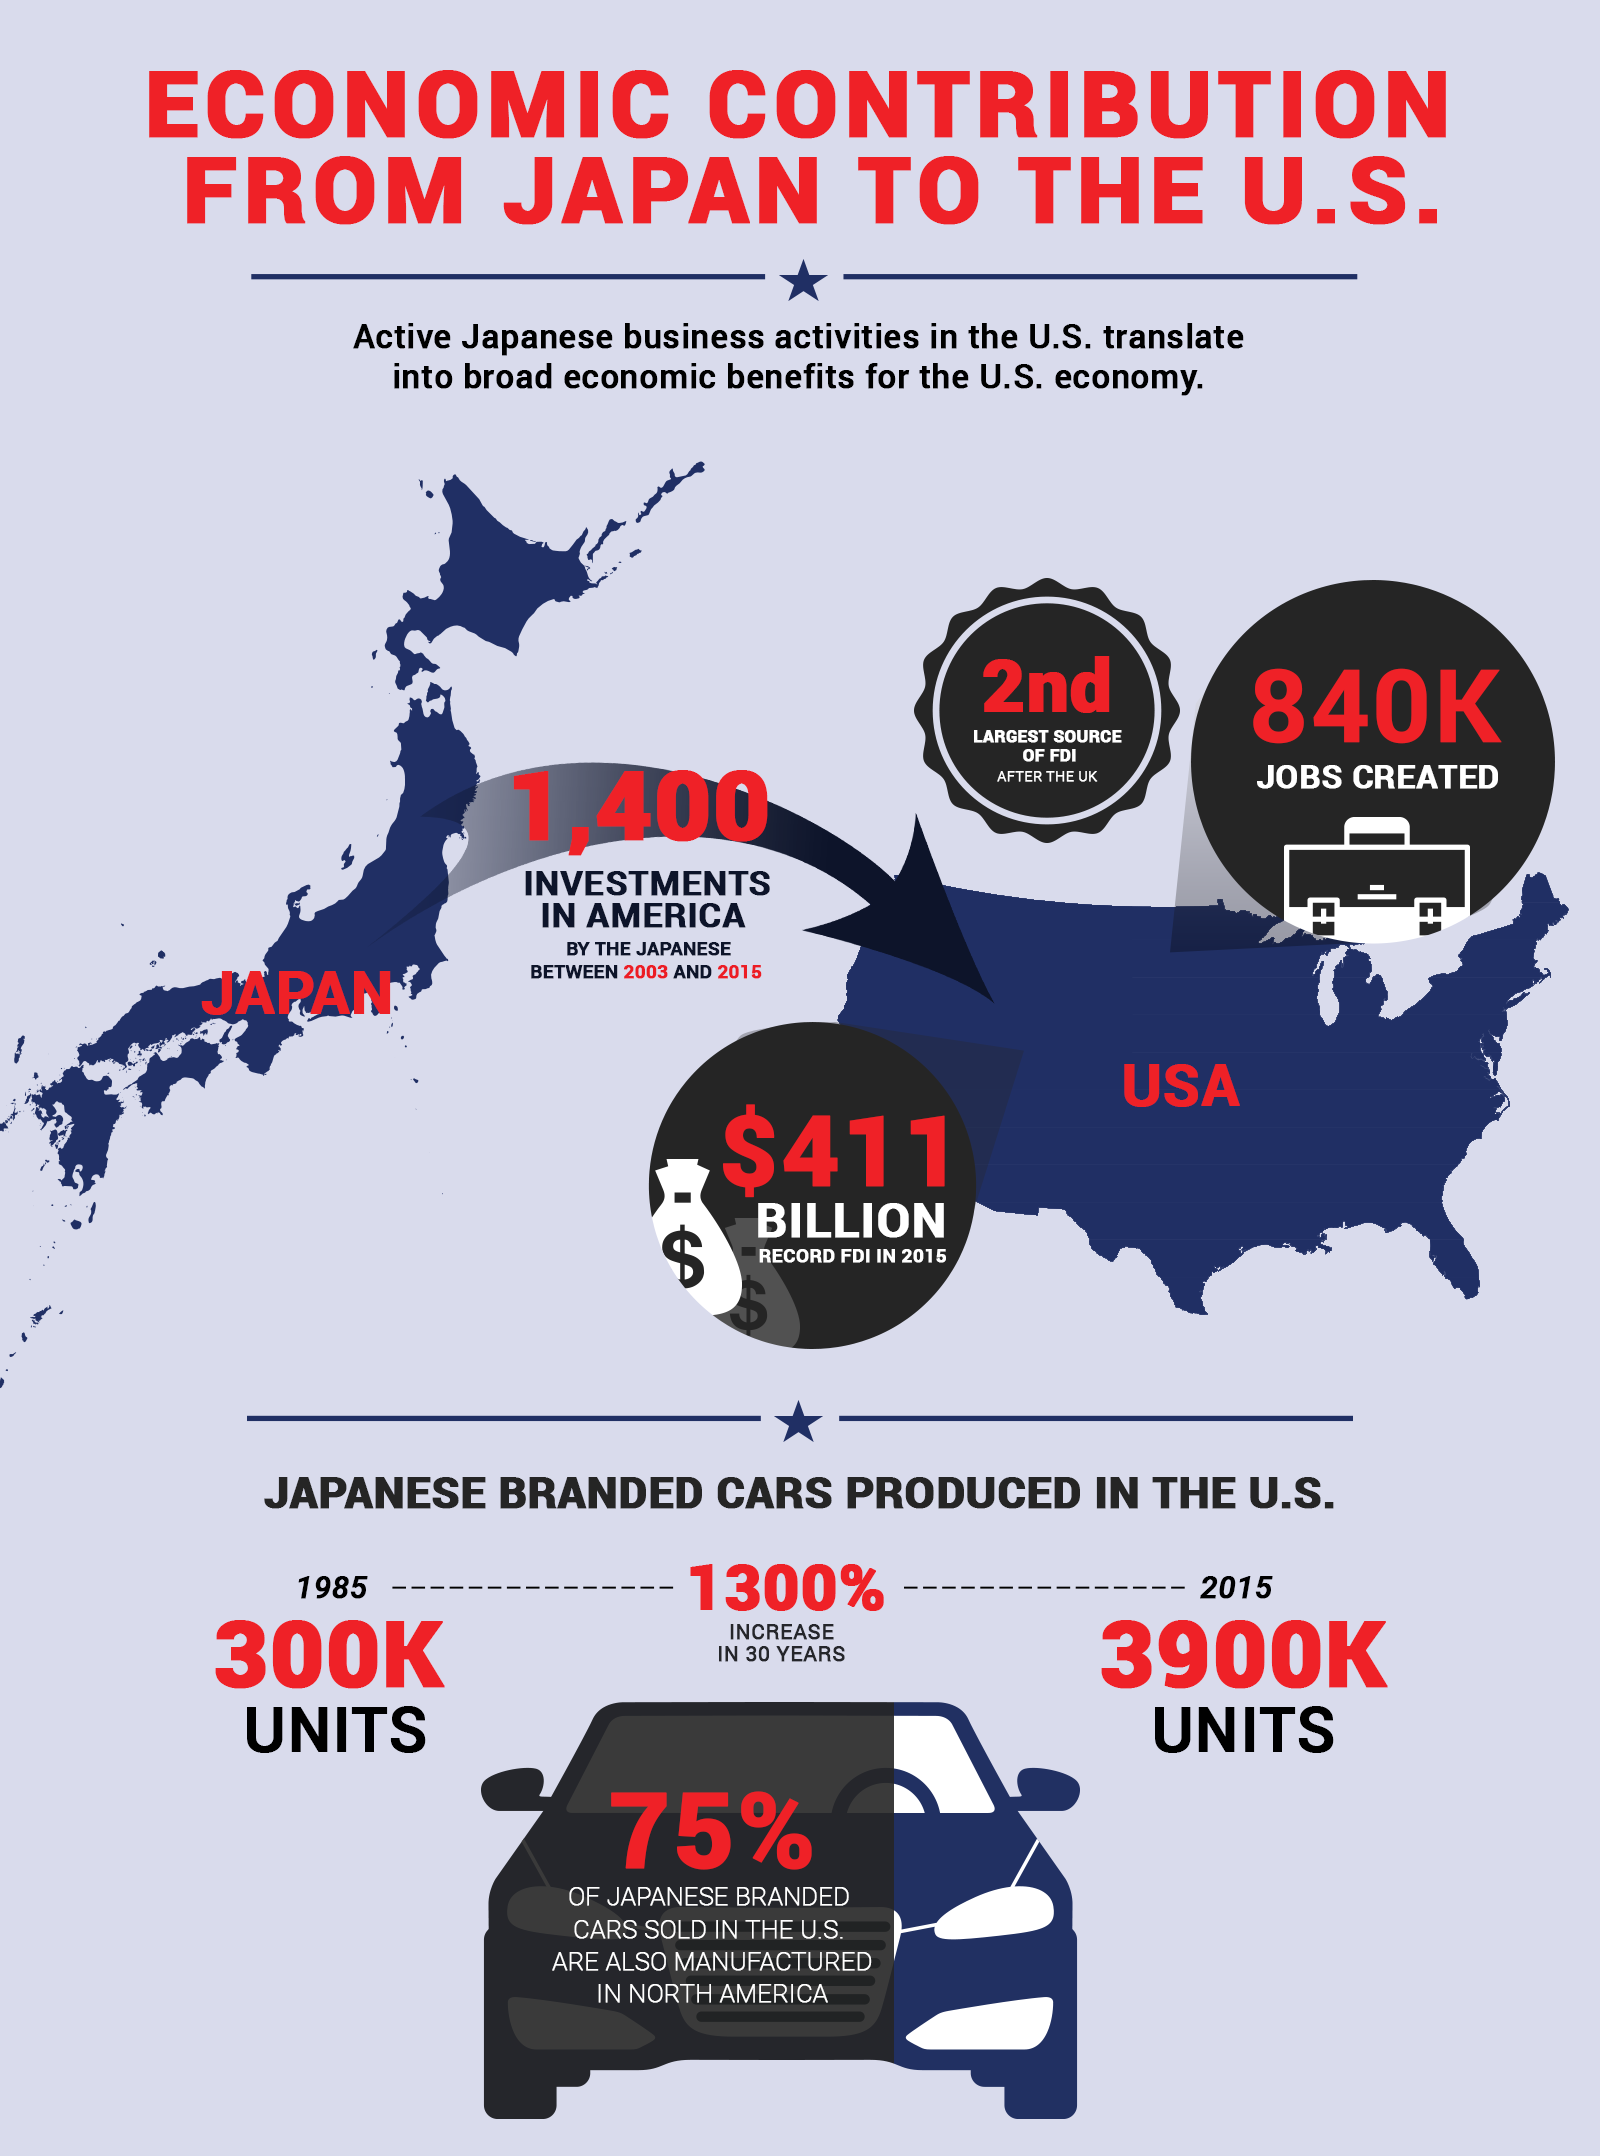 ECONOMIC CONTRIBUTION FROM JAPAN TO THE U.S.